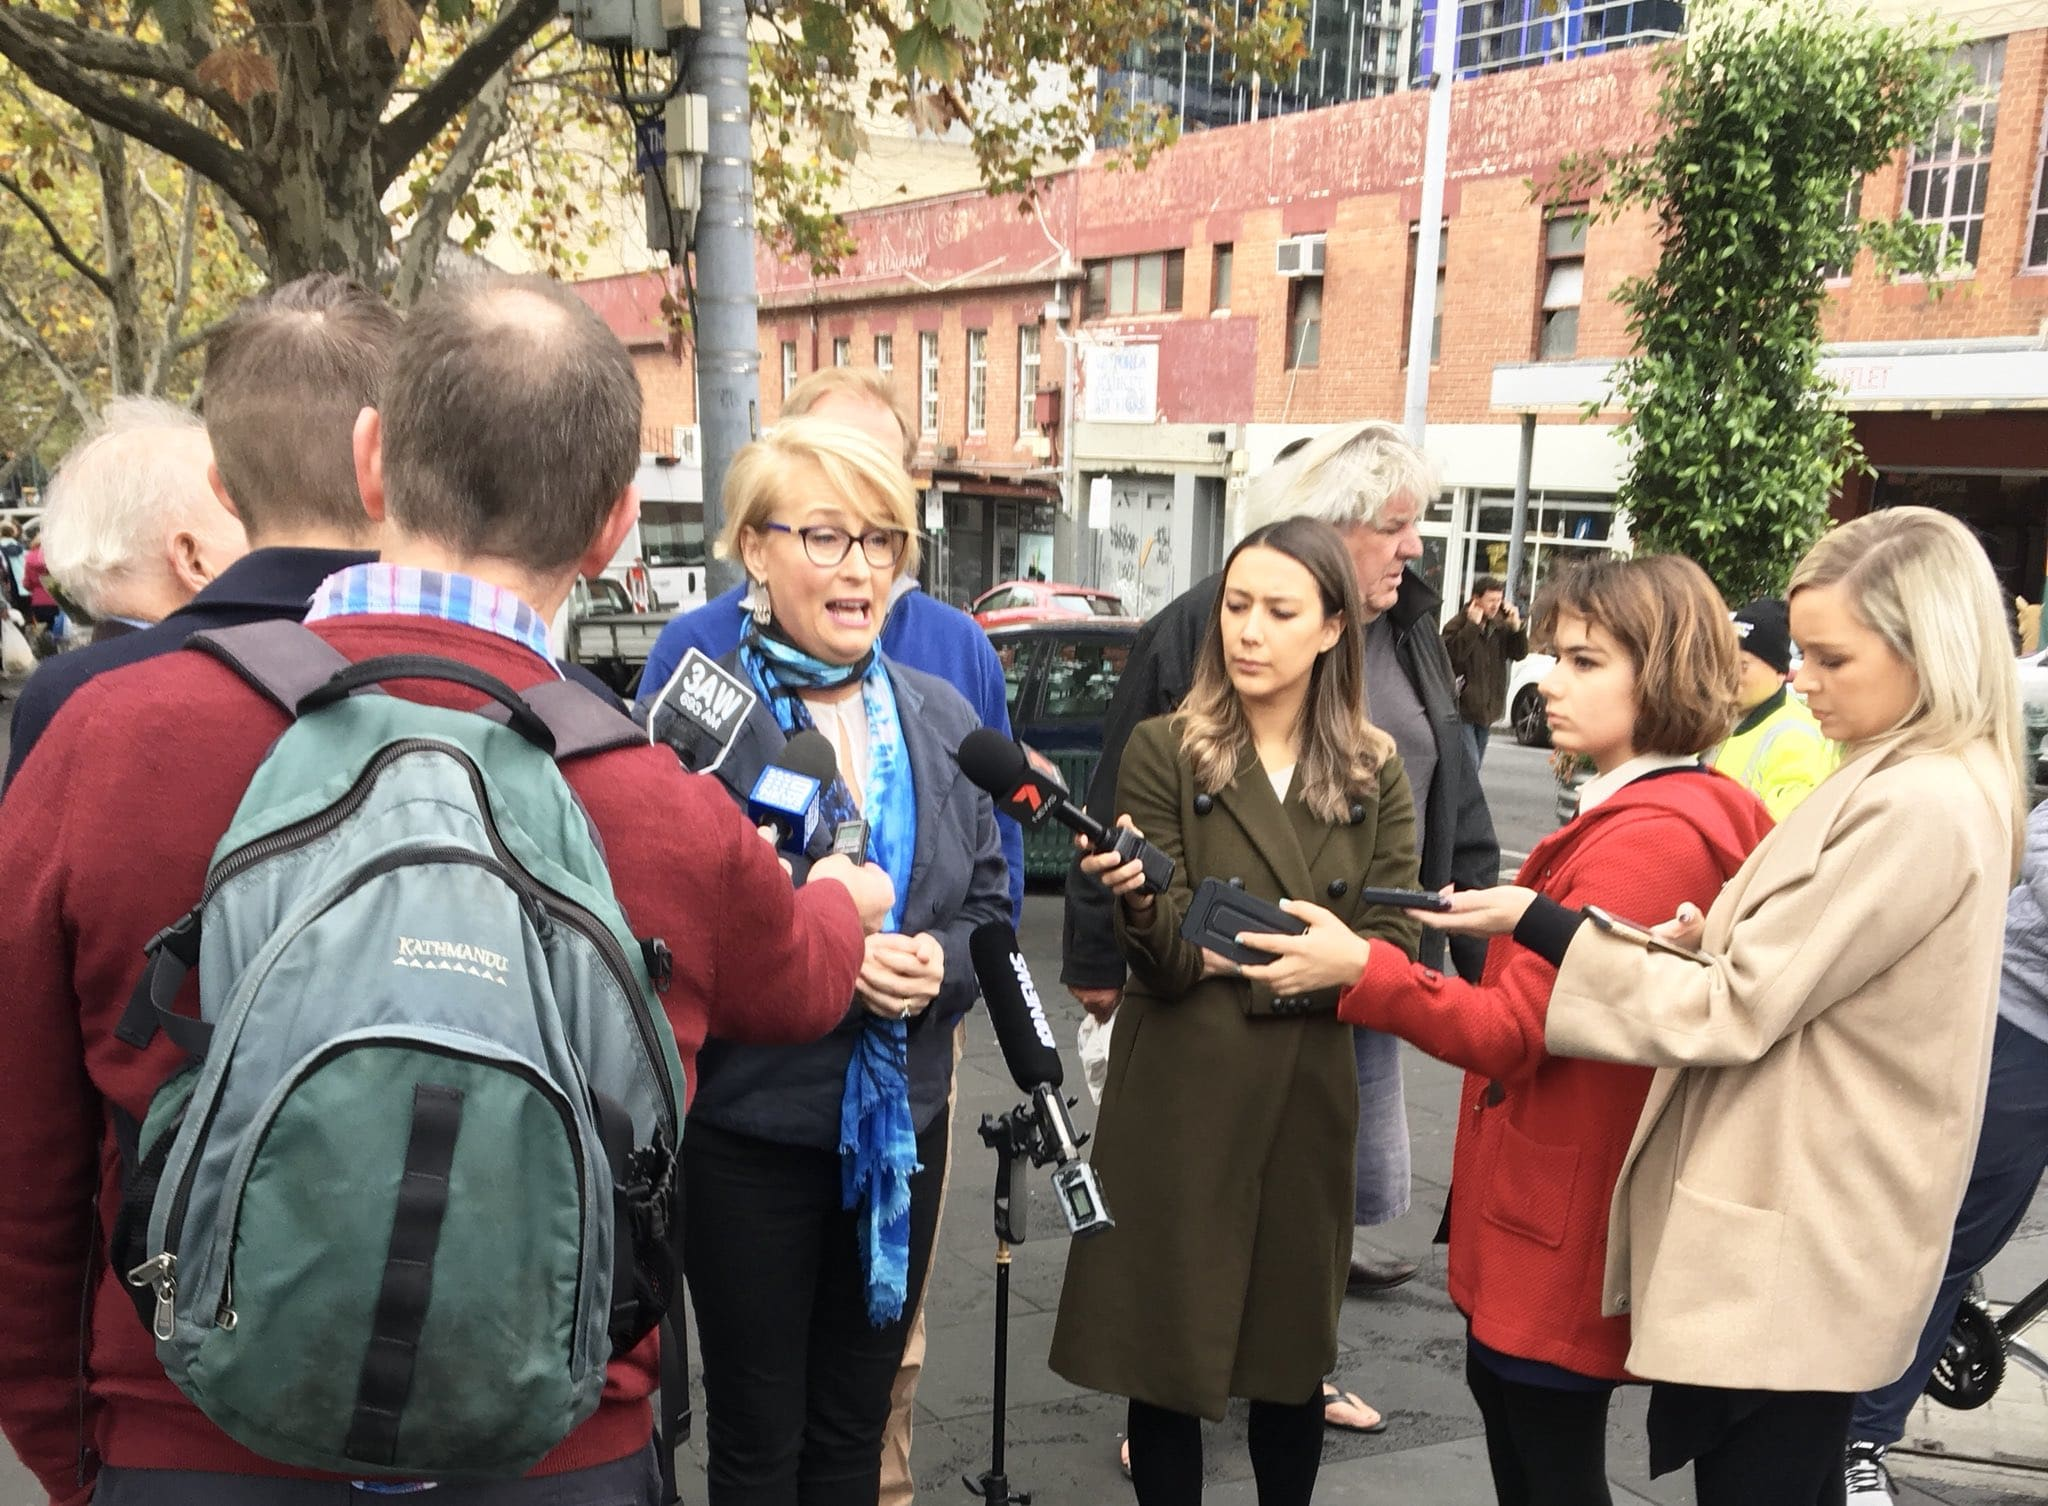 Sally Capp elected Lord Mayor in City of Melbourne by-election